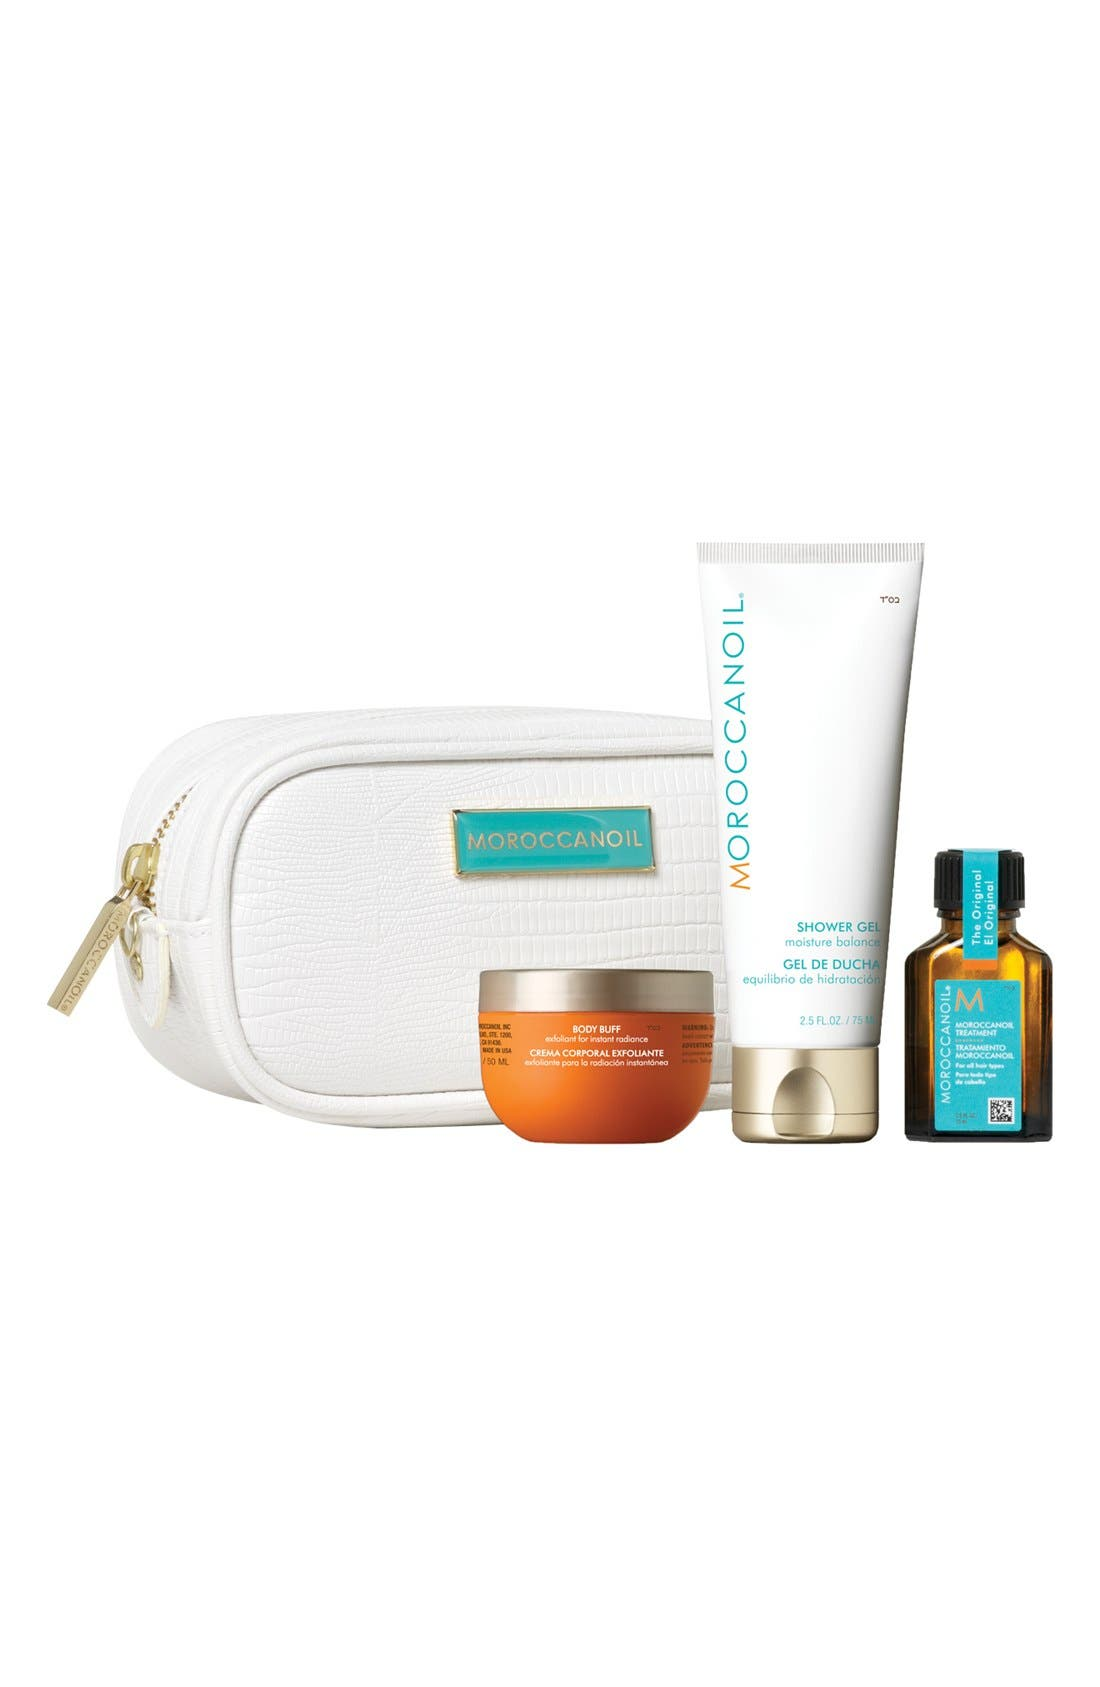 MOROCCANOIL® 'Cleanse' Travel Luxuries Set